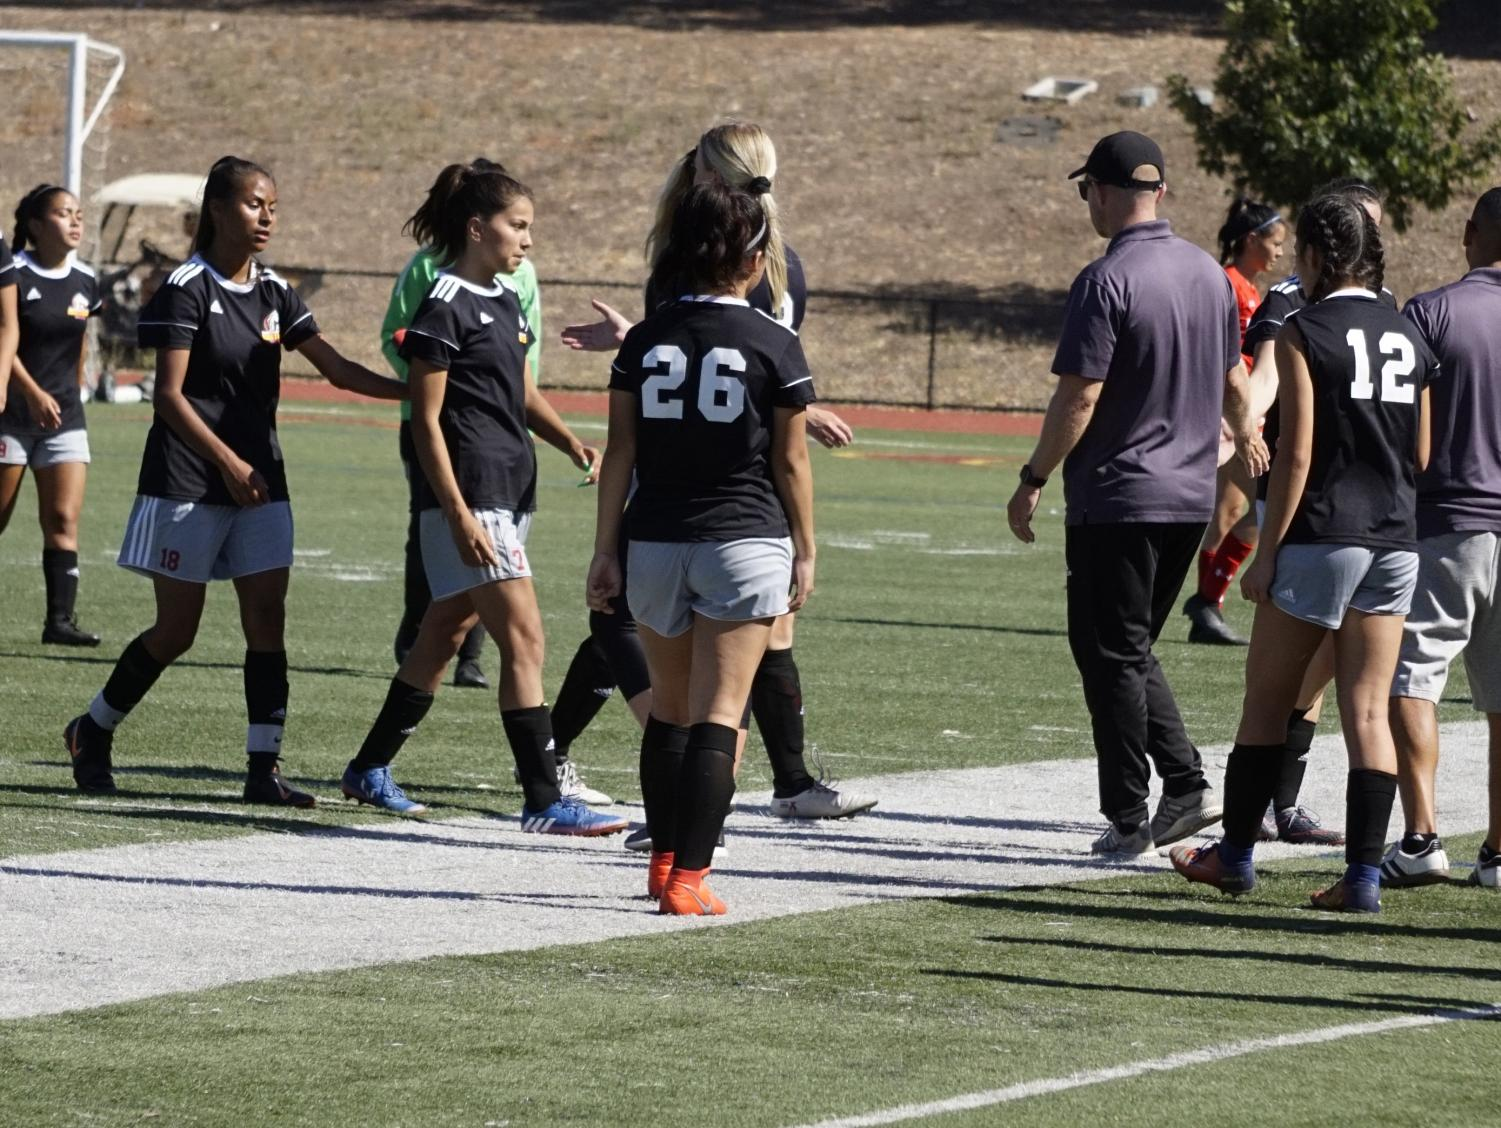 The LMC Women's Soccer team gathers to discuss their performance of the soccer game.